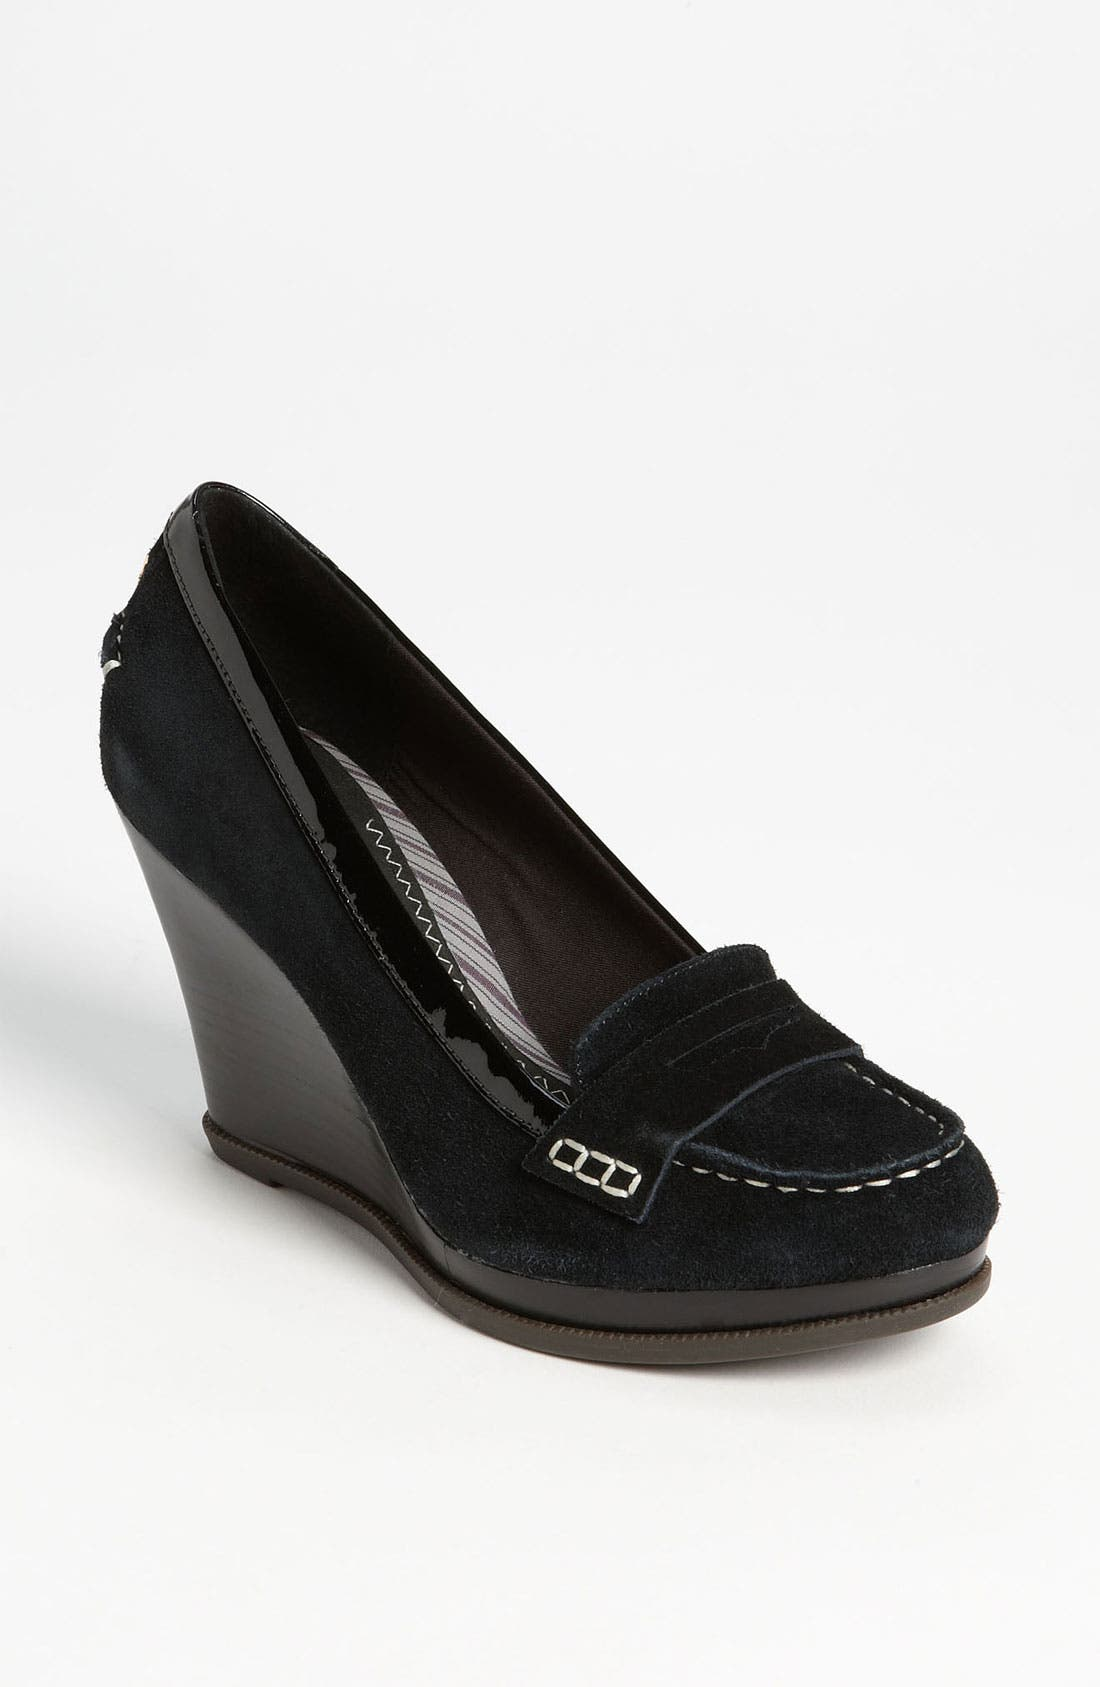 Main Image - Sperry Top-Sider® 'Windstar' Wedge Loafer Pump